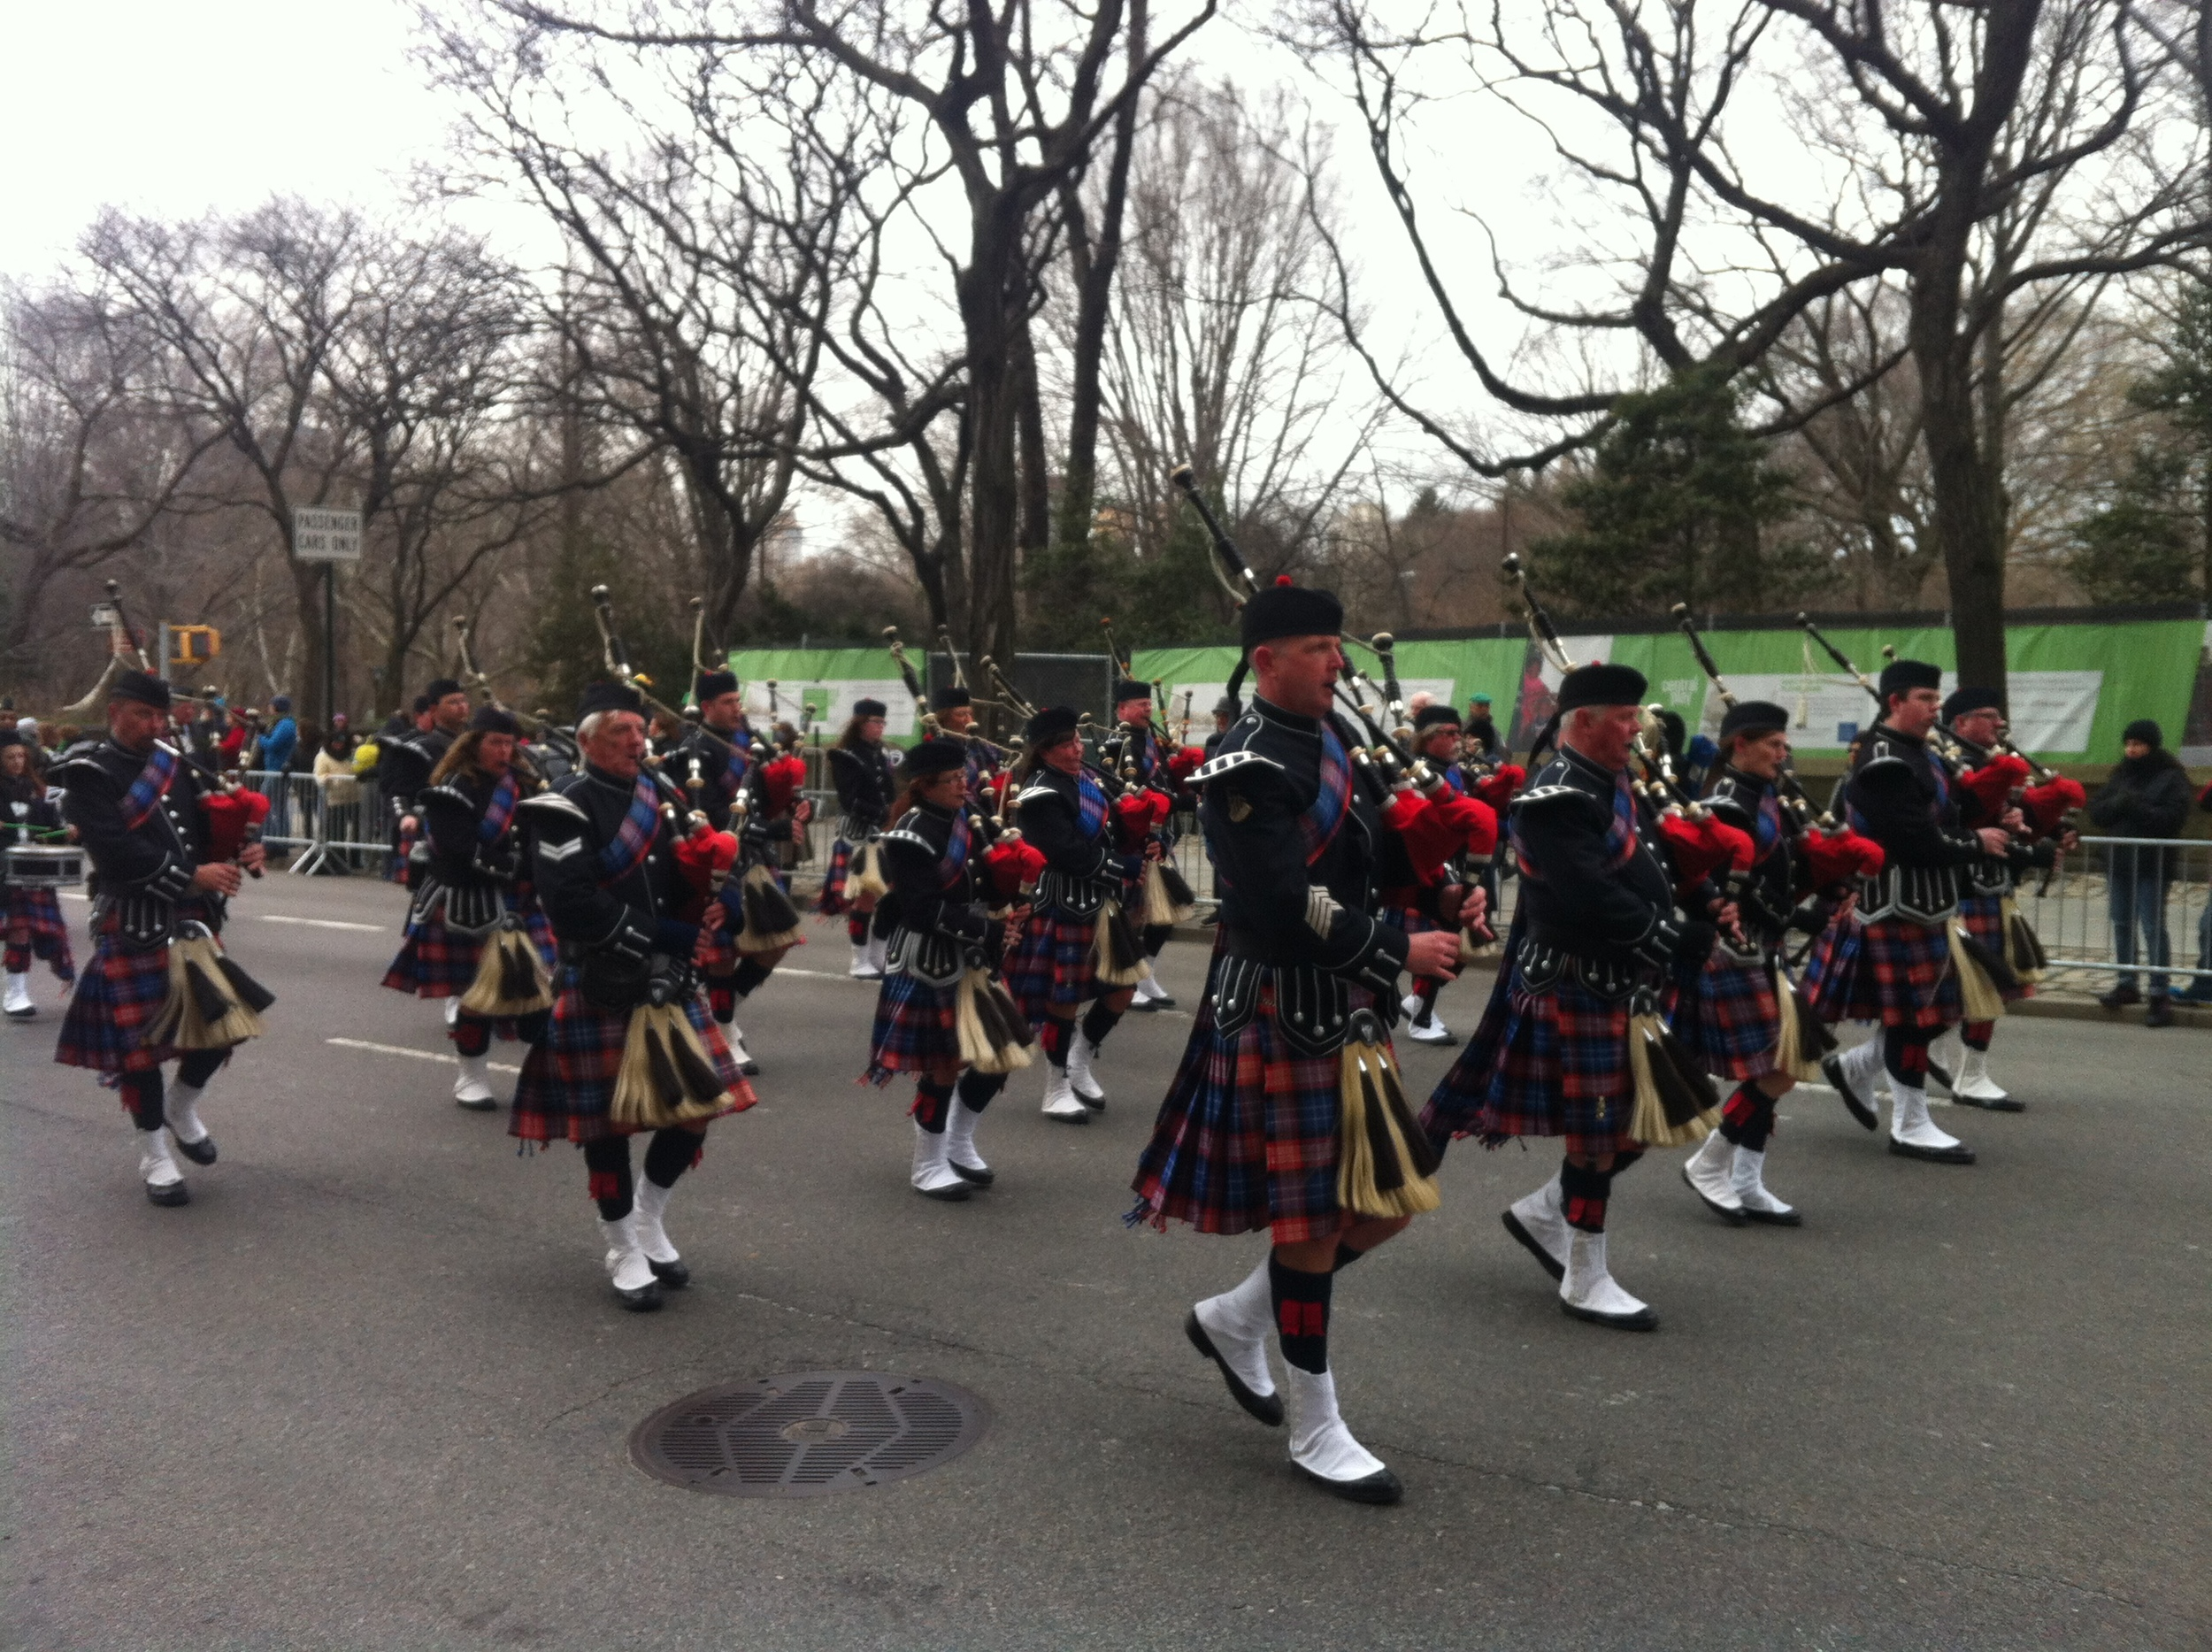 Bagpipers.